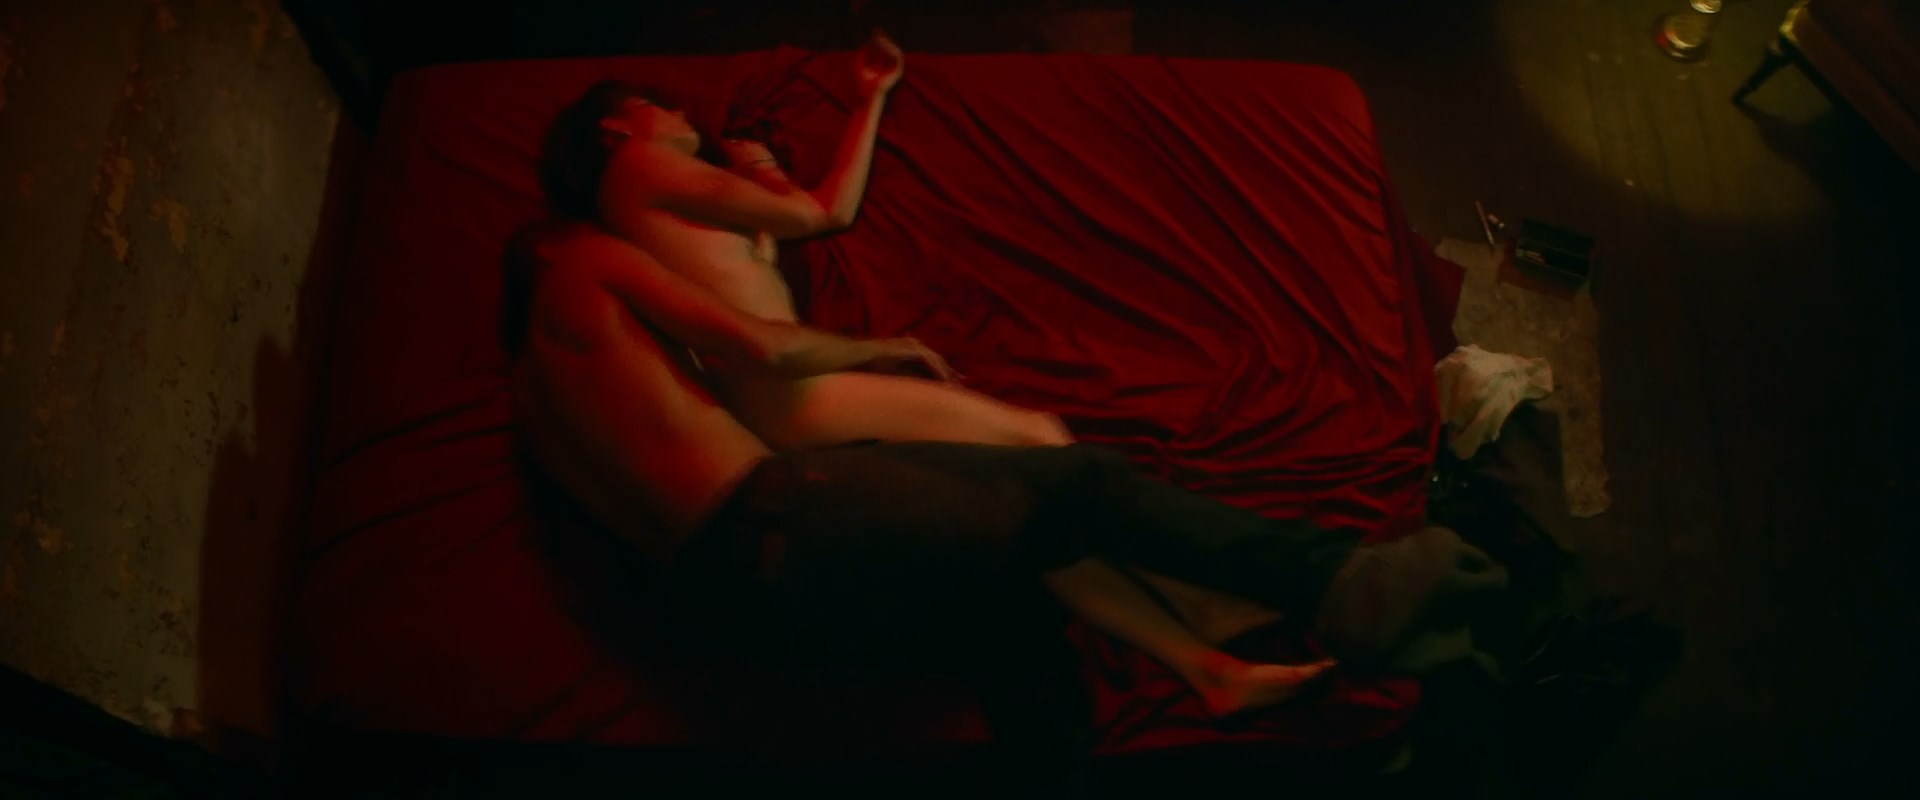 Karla Souza nude - Jacob's Ladder (2019)